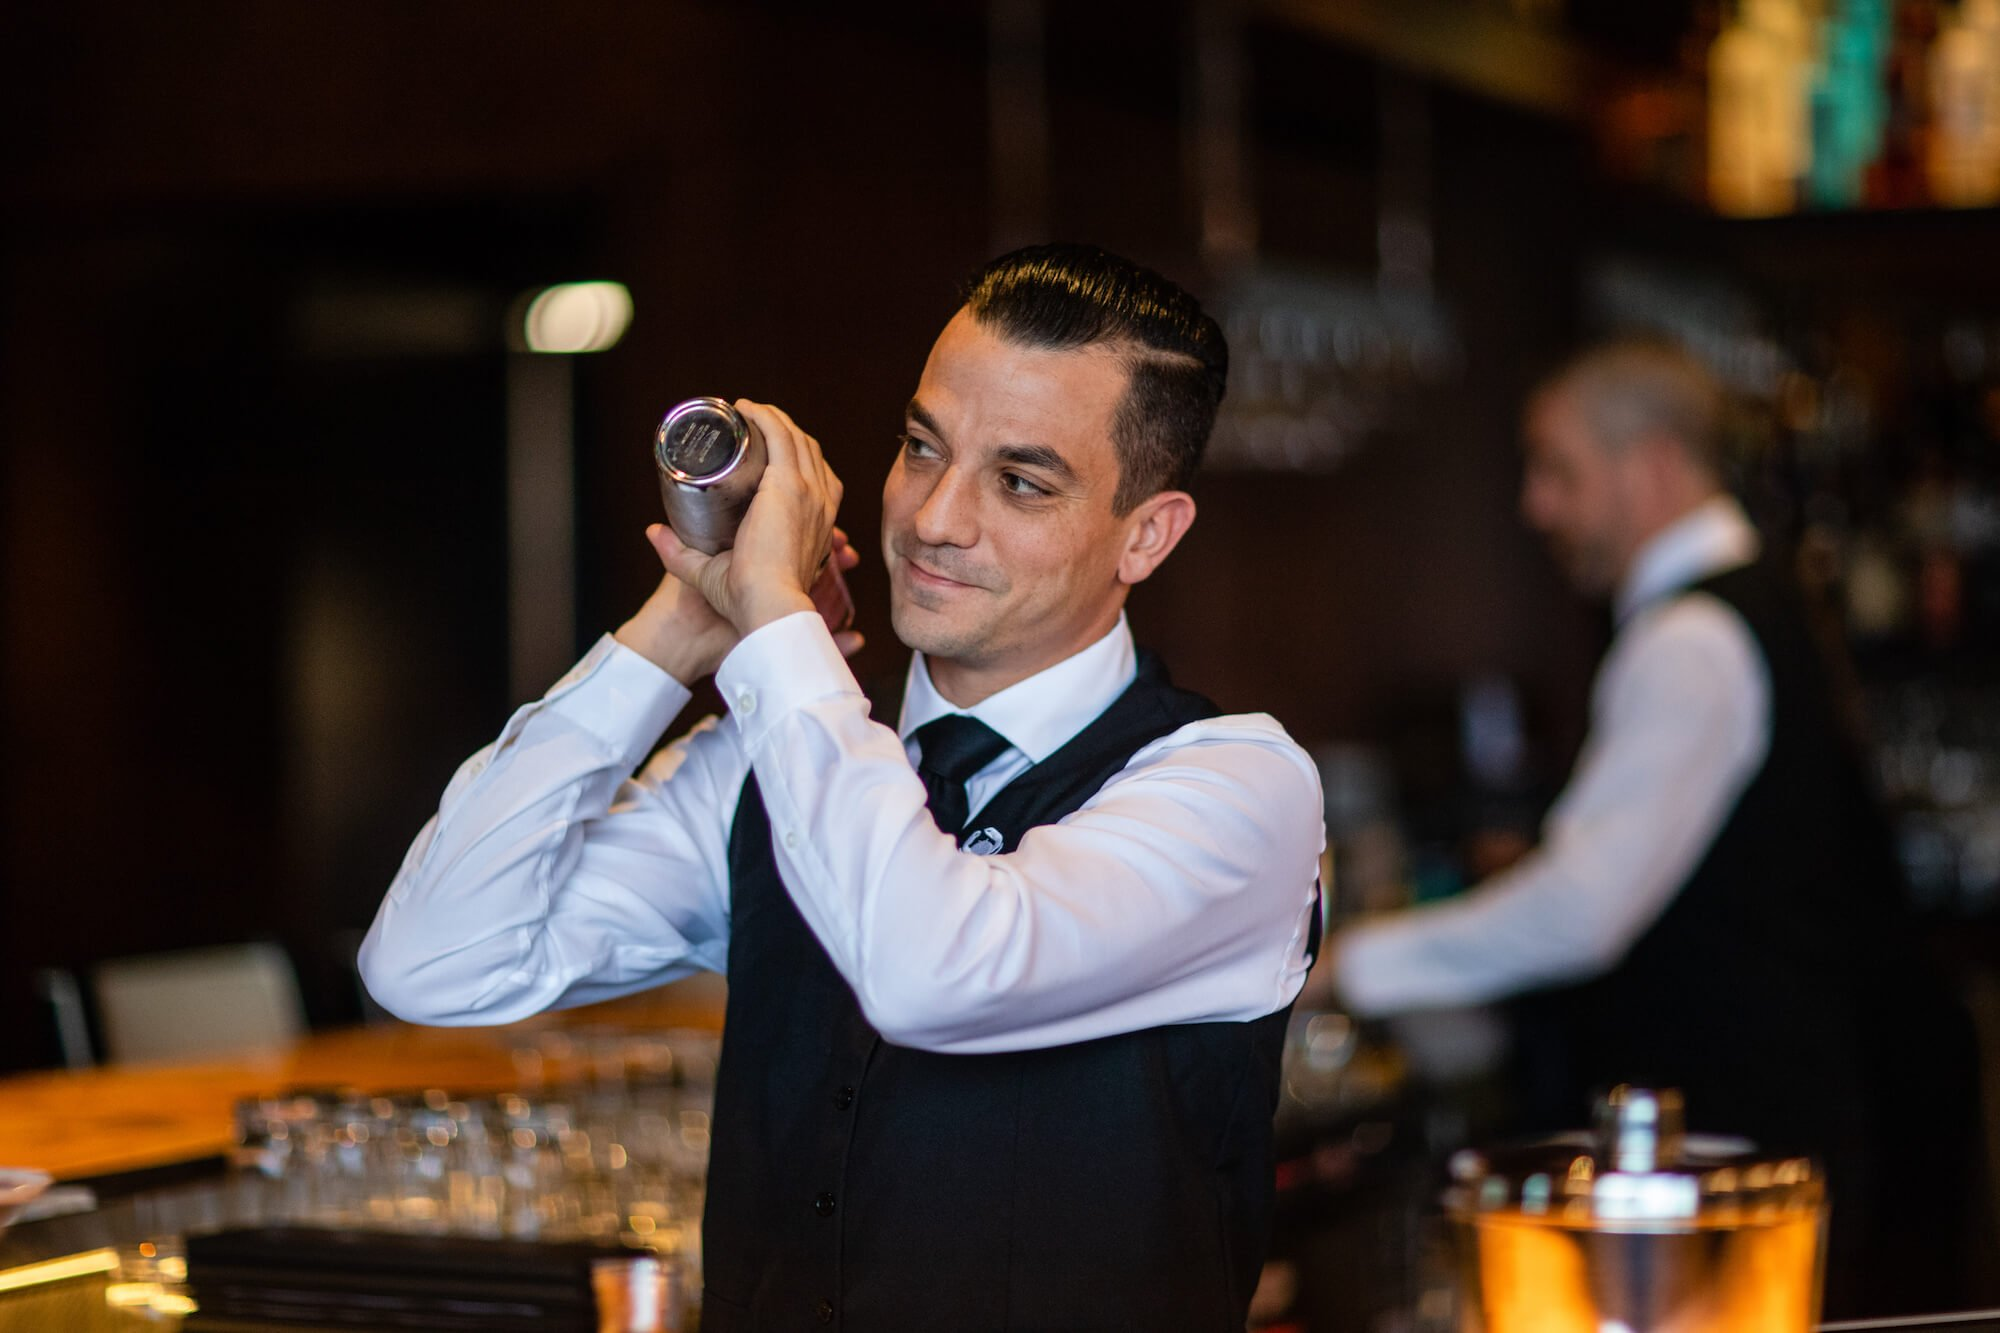 A Truluck's bartender shaking a cocktail shaker with a smile